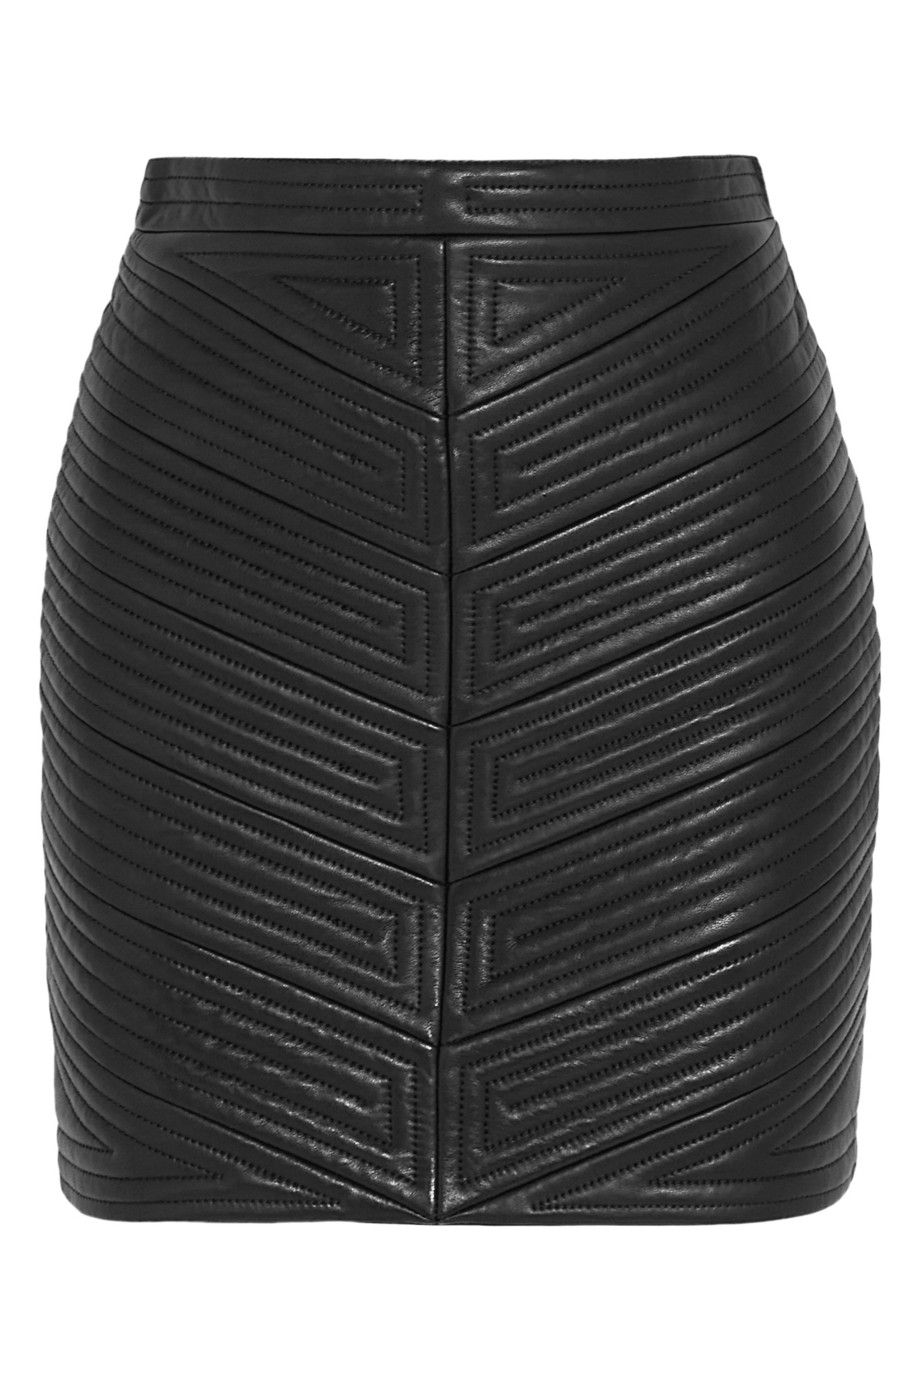 398c3250f Black Quilted Leather Mini Skirt - raveitsafe